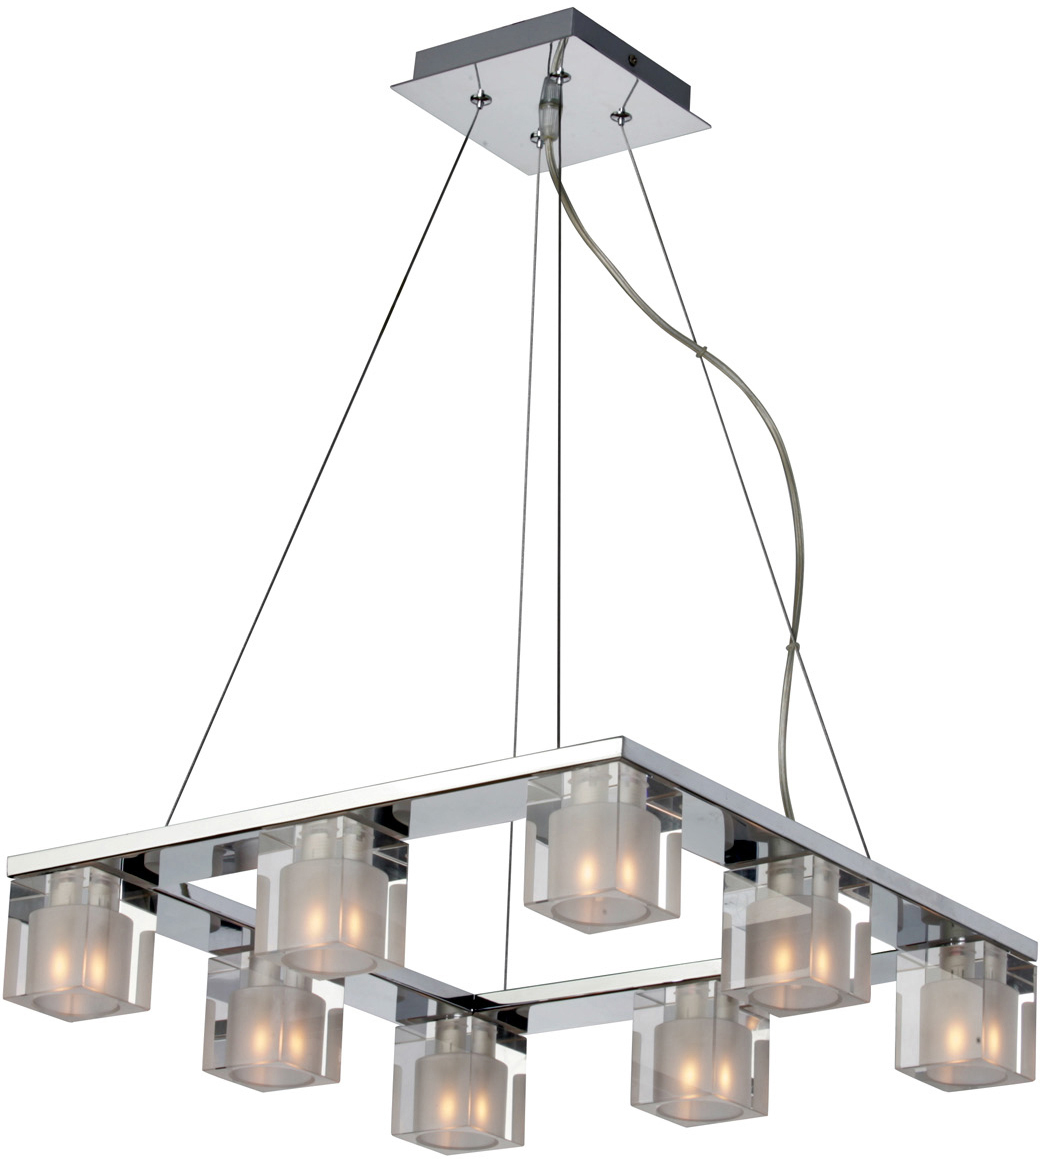 Blocs 8-Light Pendant